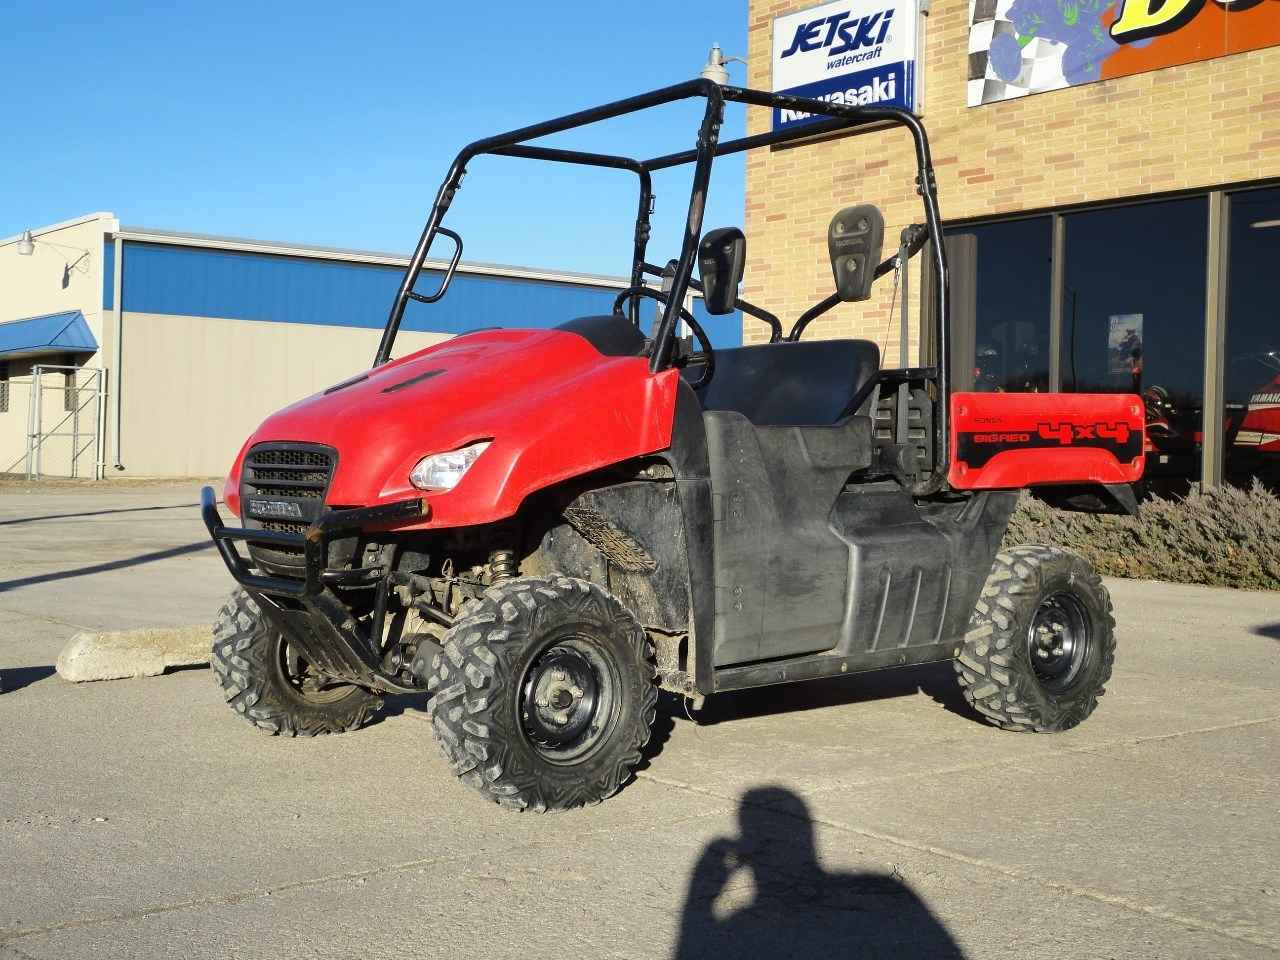 used 2012 honda muv 700 big red atvs for sale in nebraska on atv trades. Black Bedroom Furniture Sets. Home Design Ideas